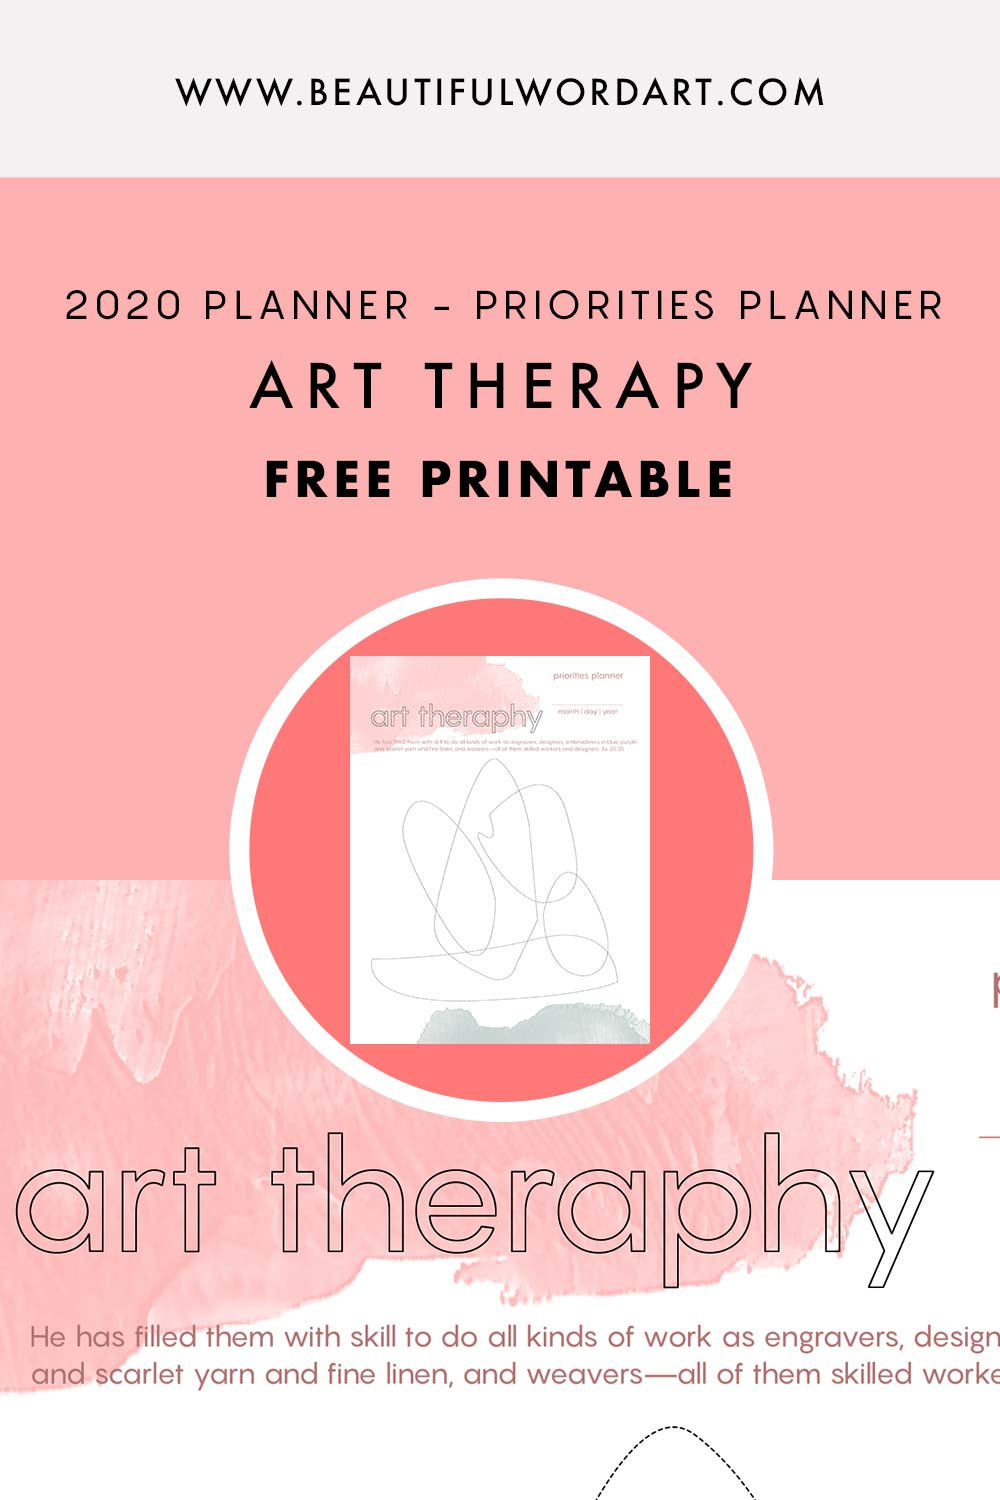 Art Therapy Free Printable - Beautiful Word Blog